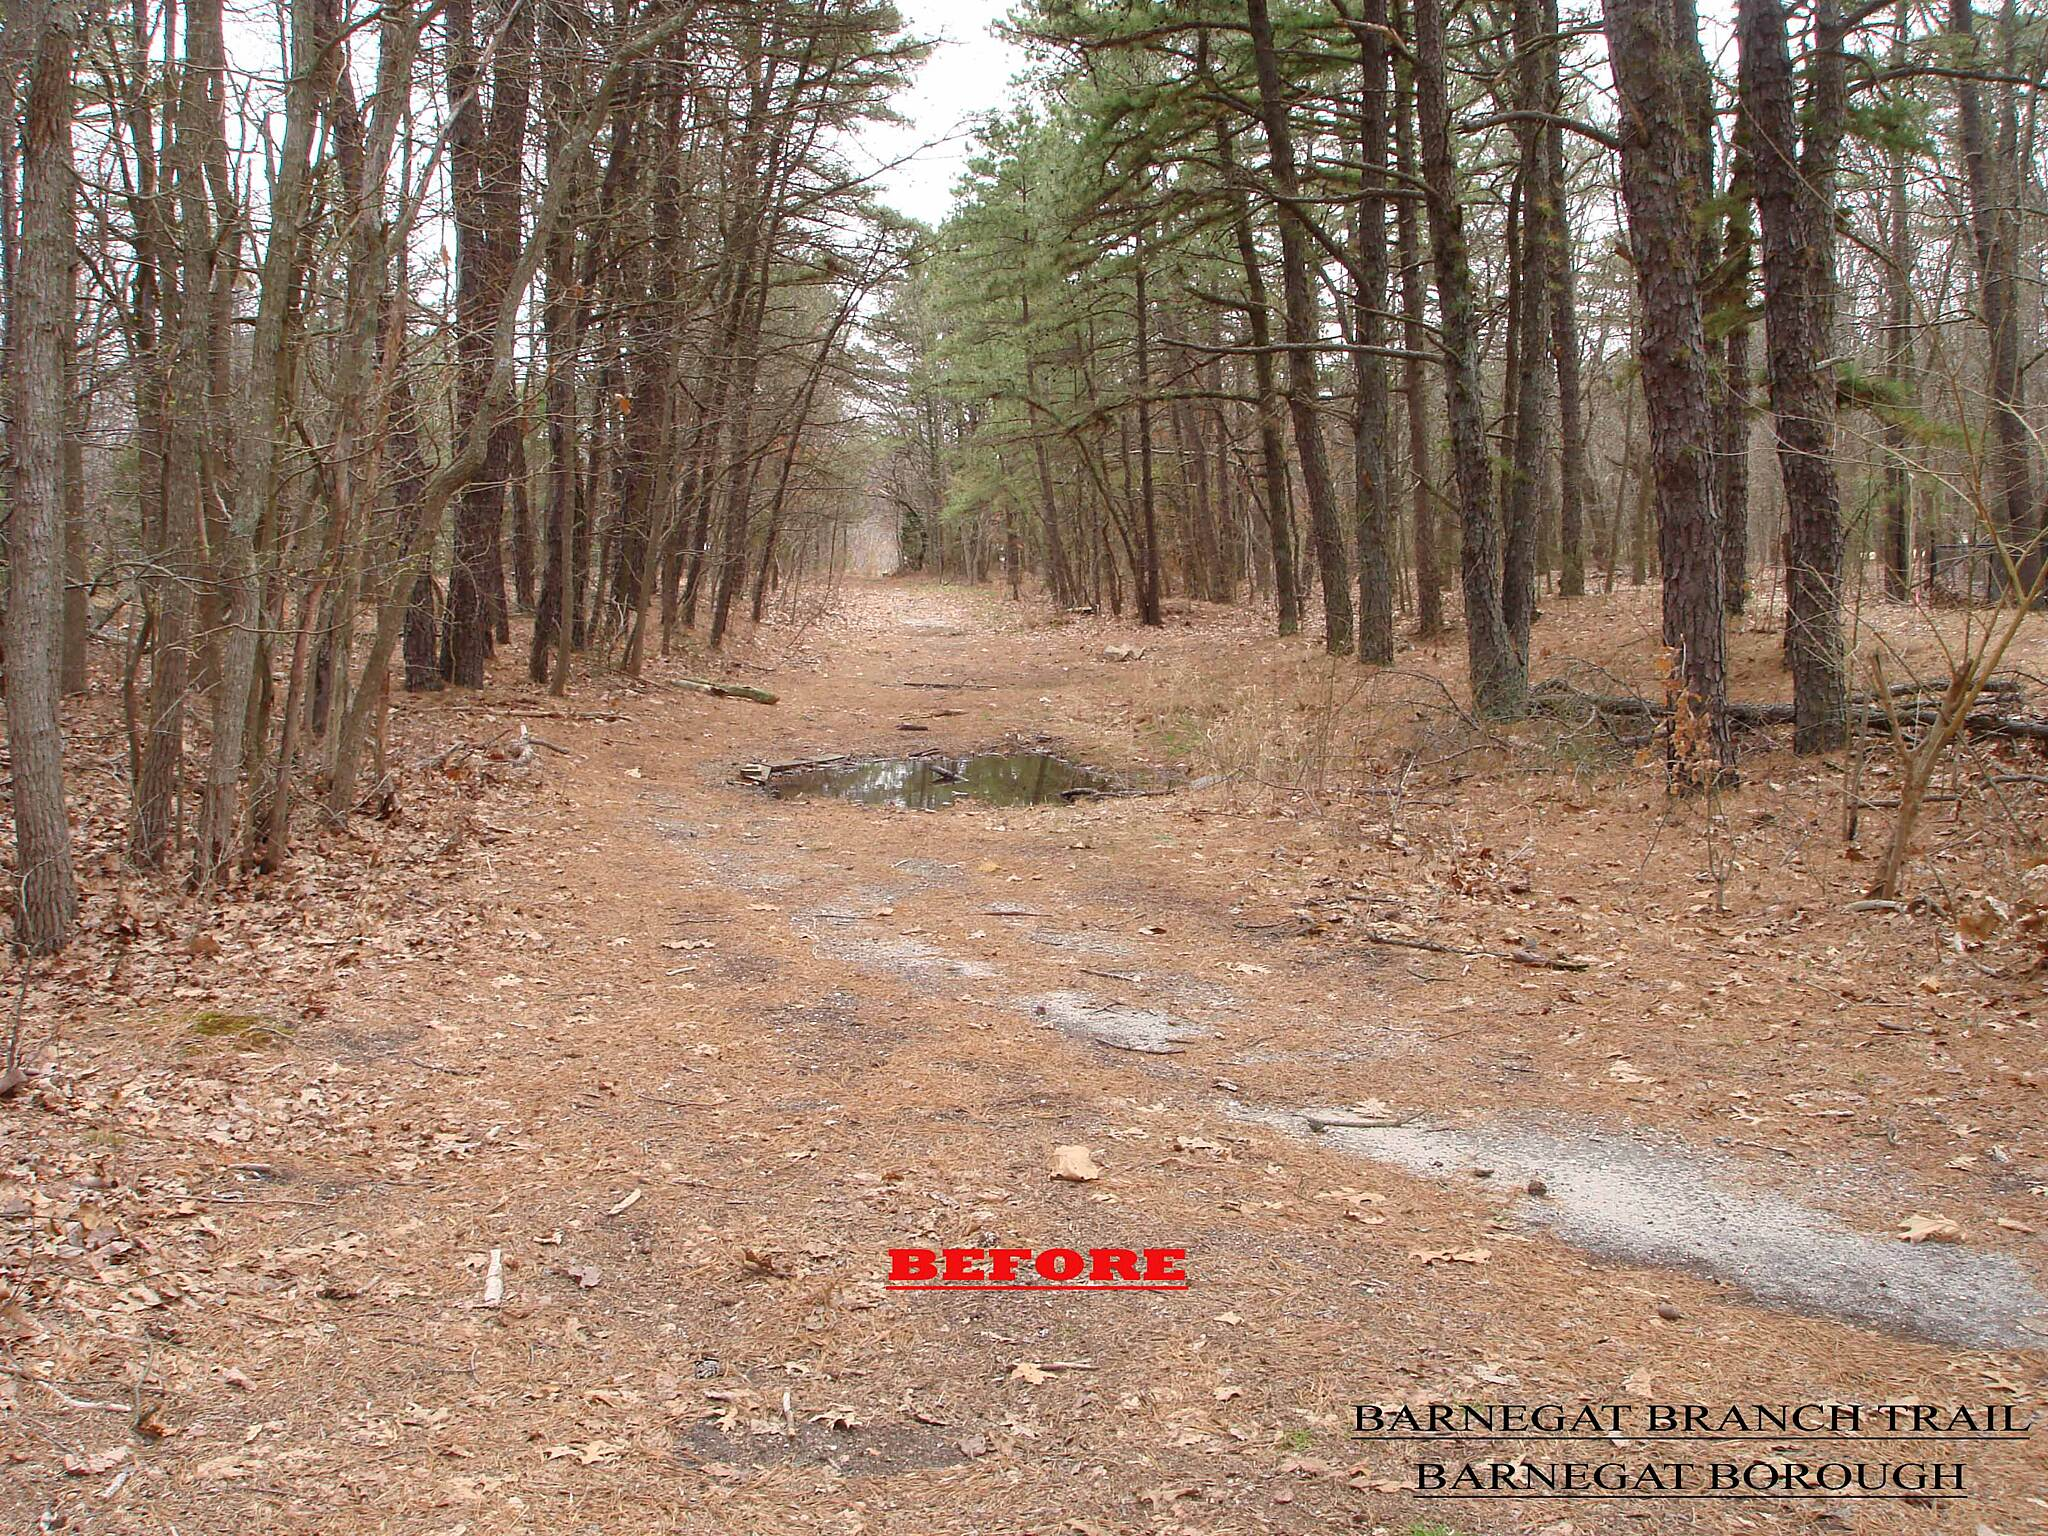 Barnegat Branch Trail BEFORE Pre-construction view of the Pine trees along the Barnegat Branch Trail in the Borough of Barnegat